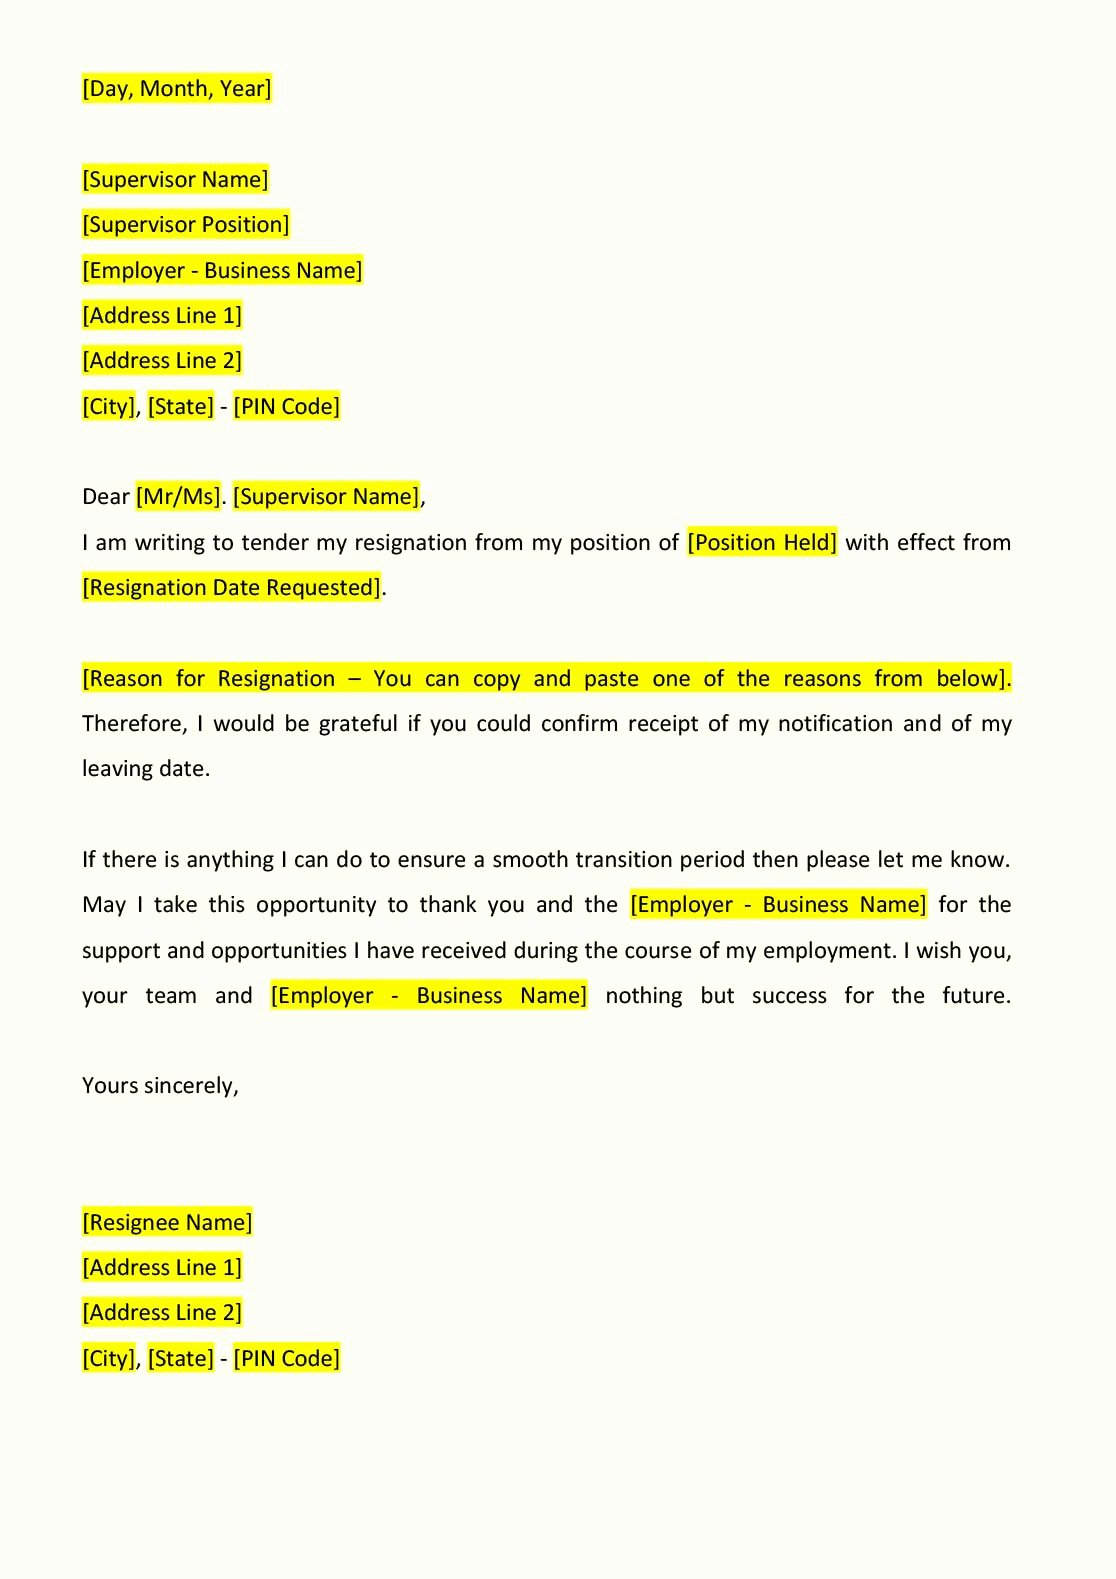 Letter Of Resignation Email Template New Resignation Letter format Indiafilings Document Center